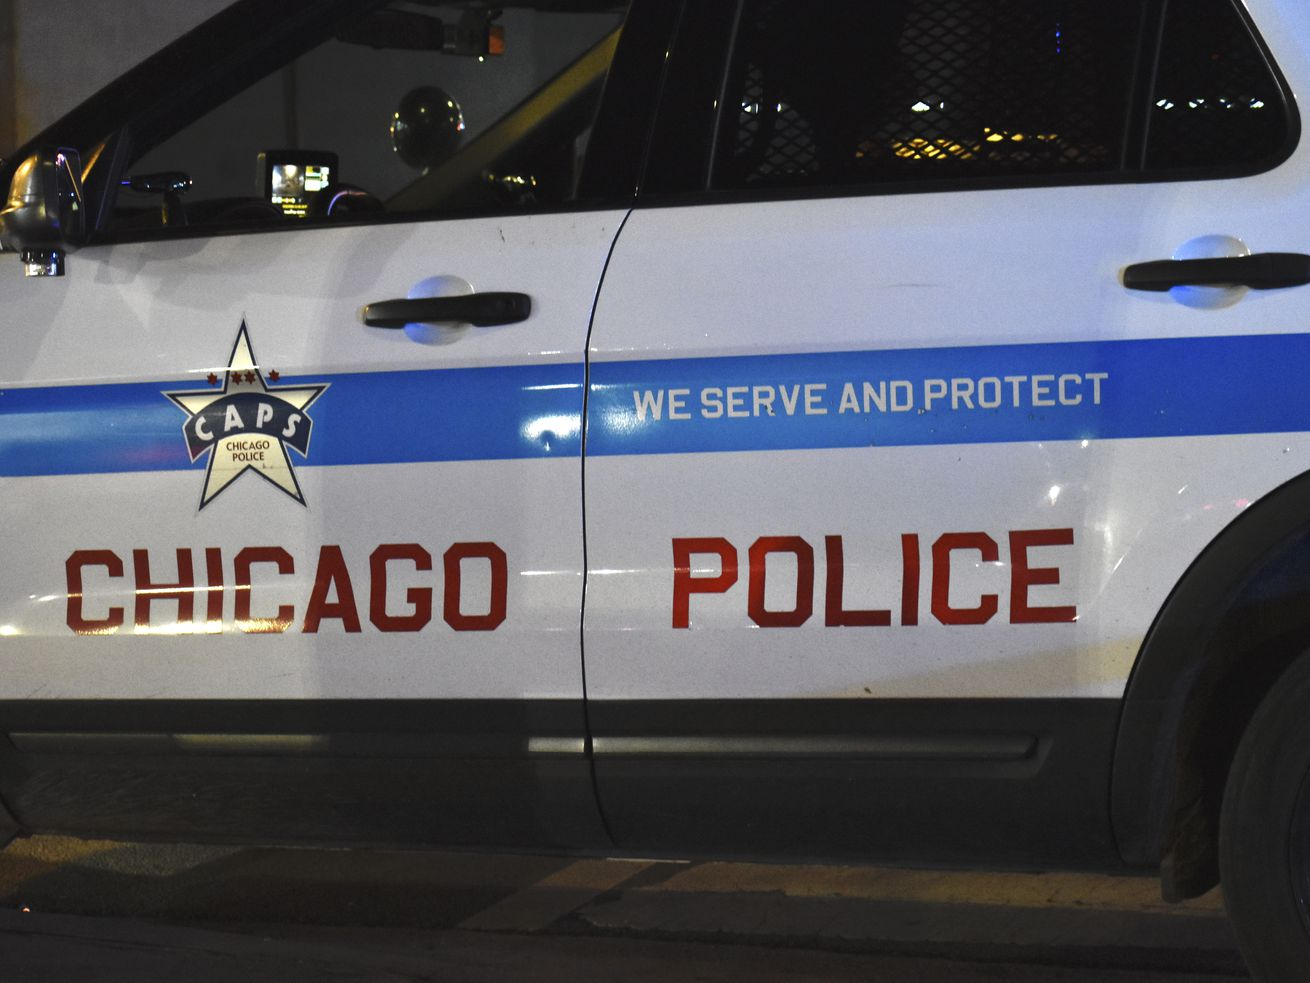 One person is in custody after shots were fired at Chicago police officers April 22, 2021 in West Englewood.